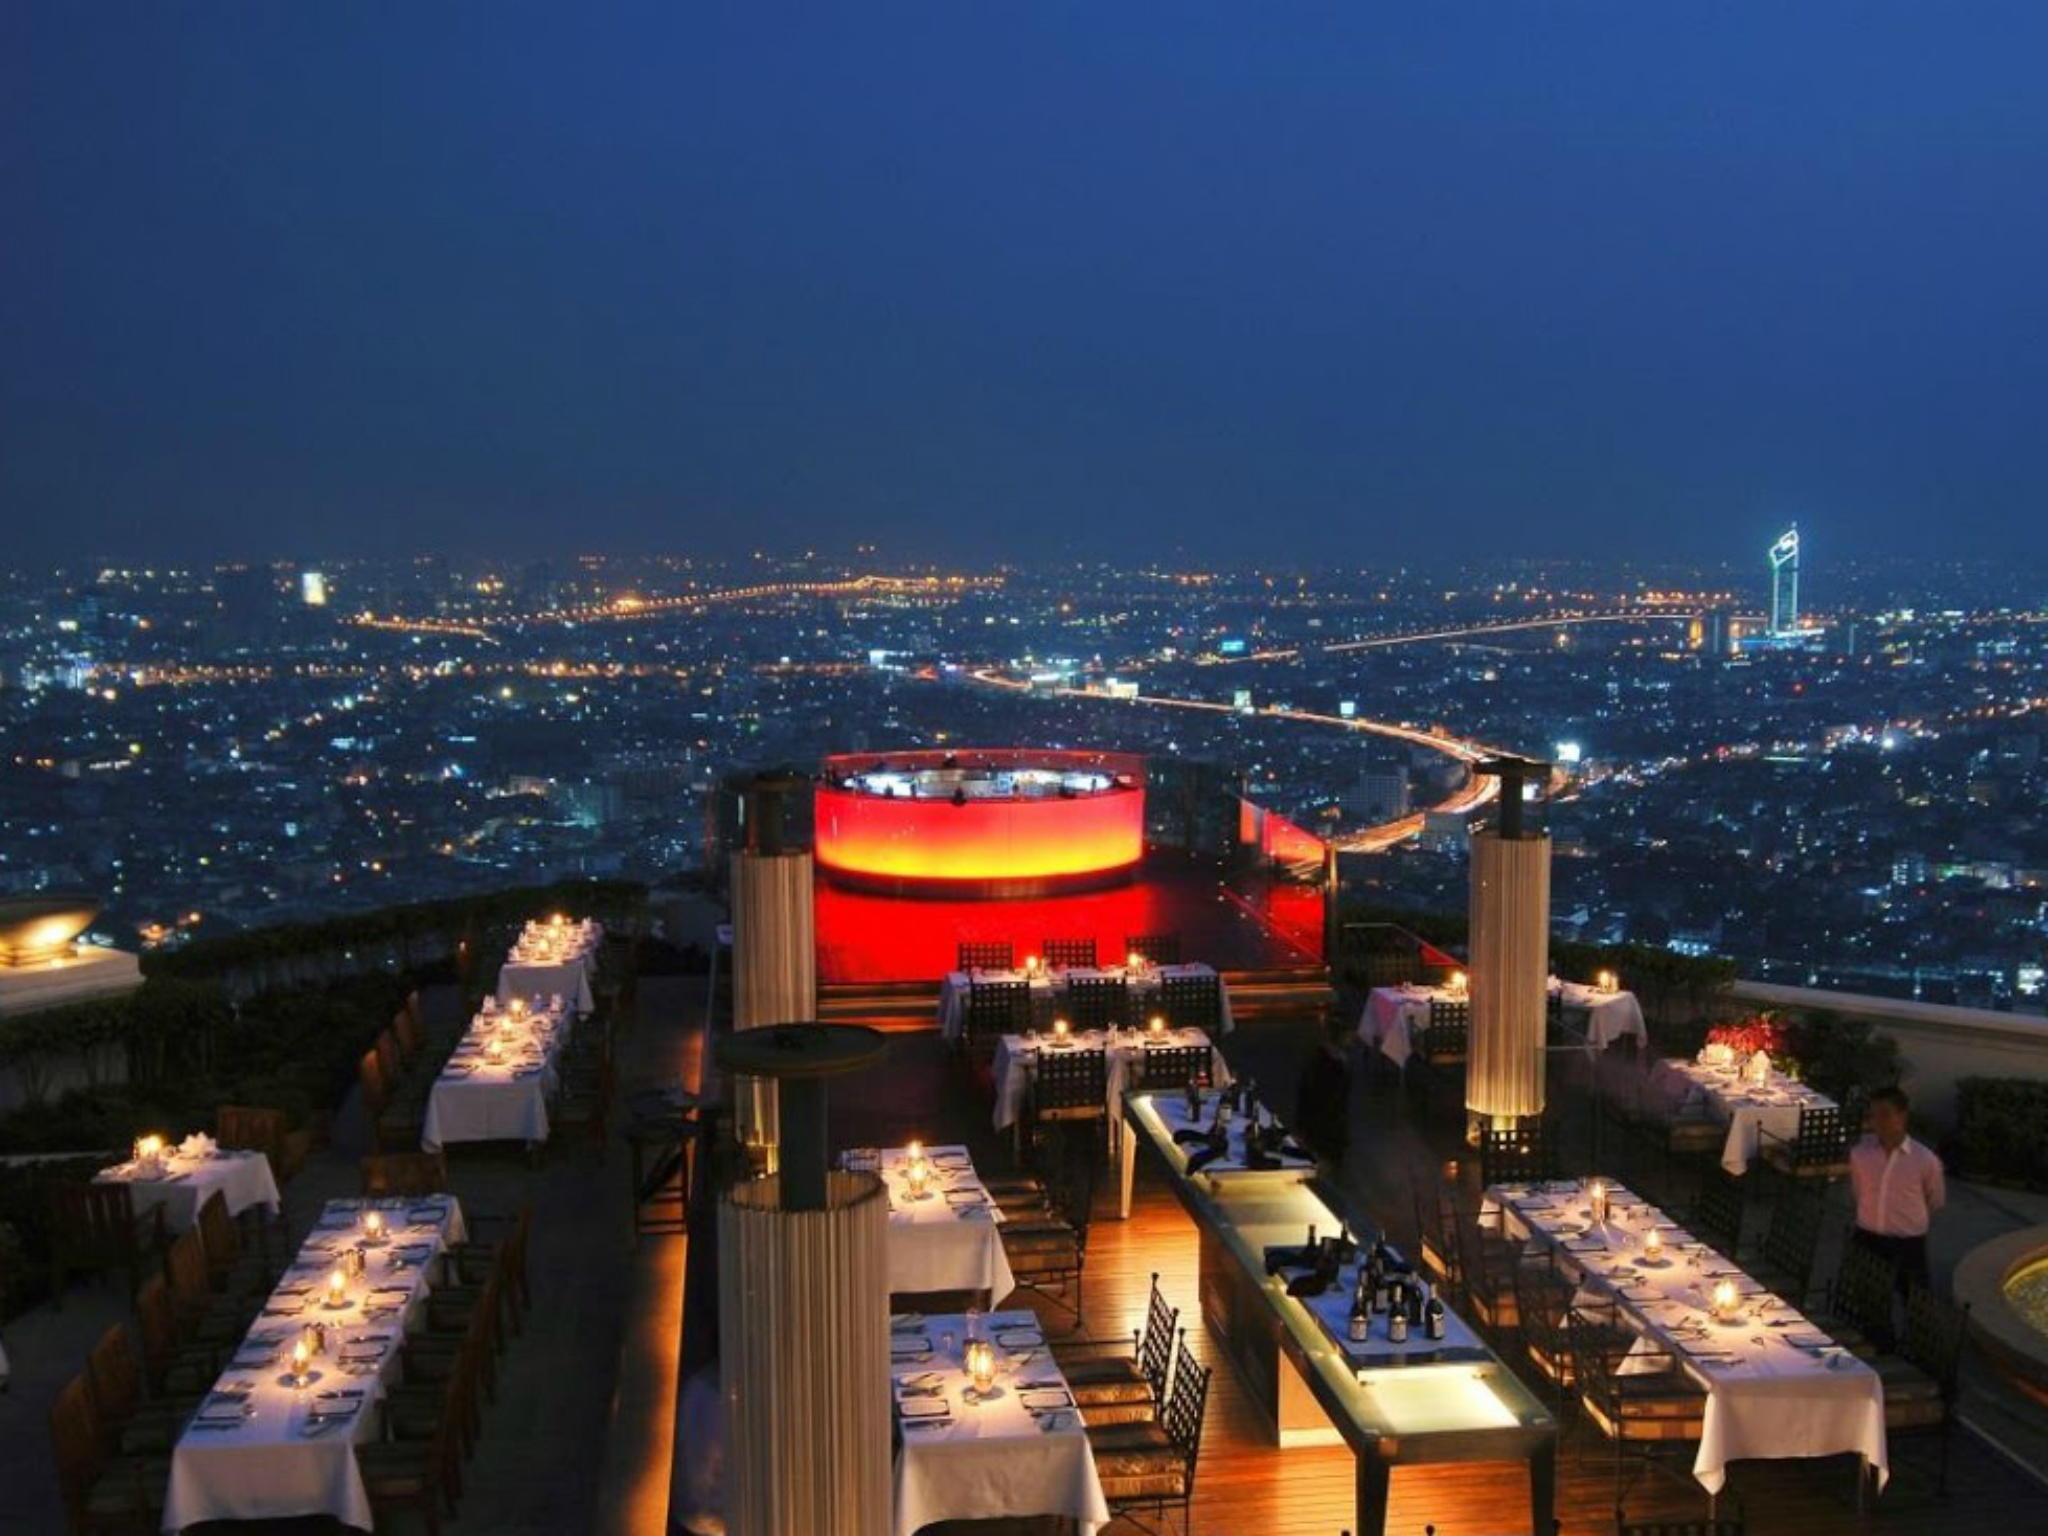 Rooftop cocktail bar overlooking the Bangkok night skyline